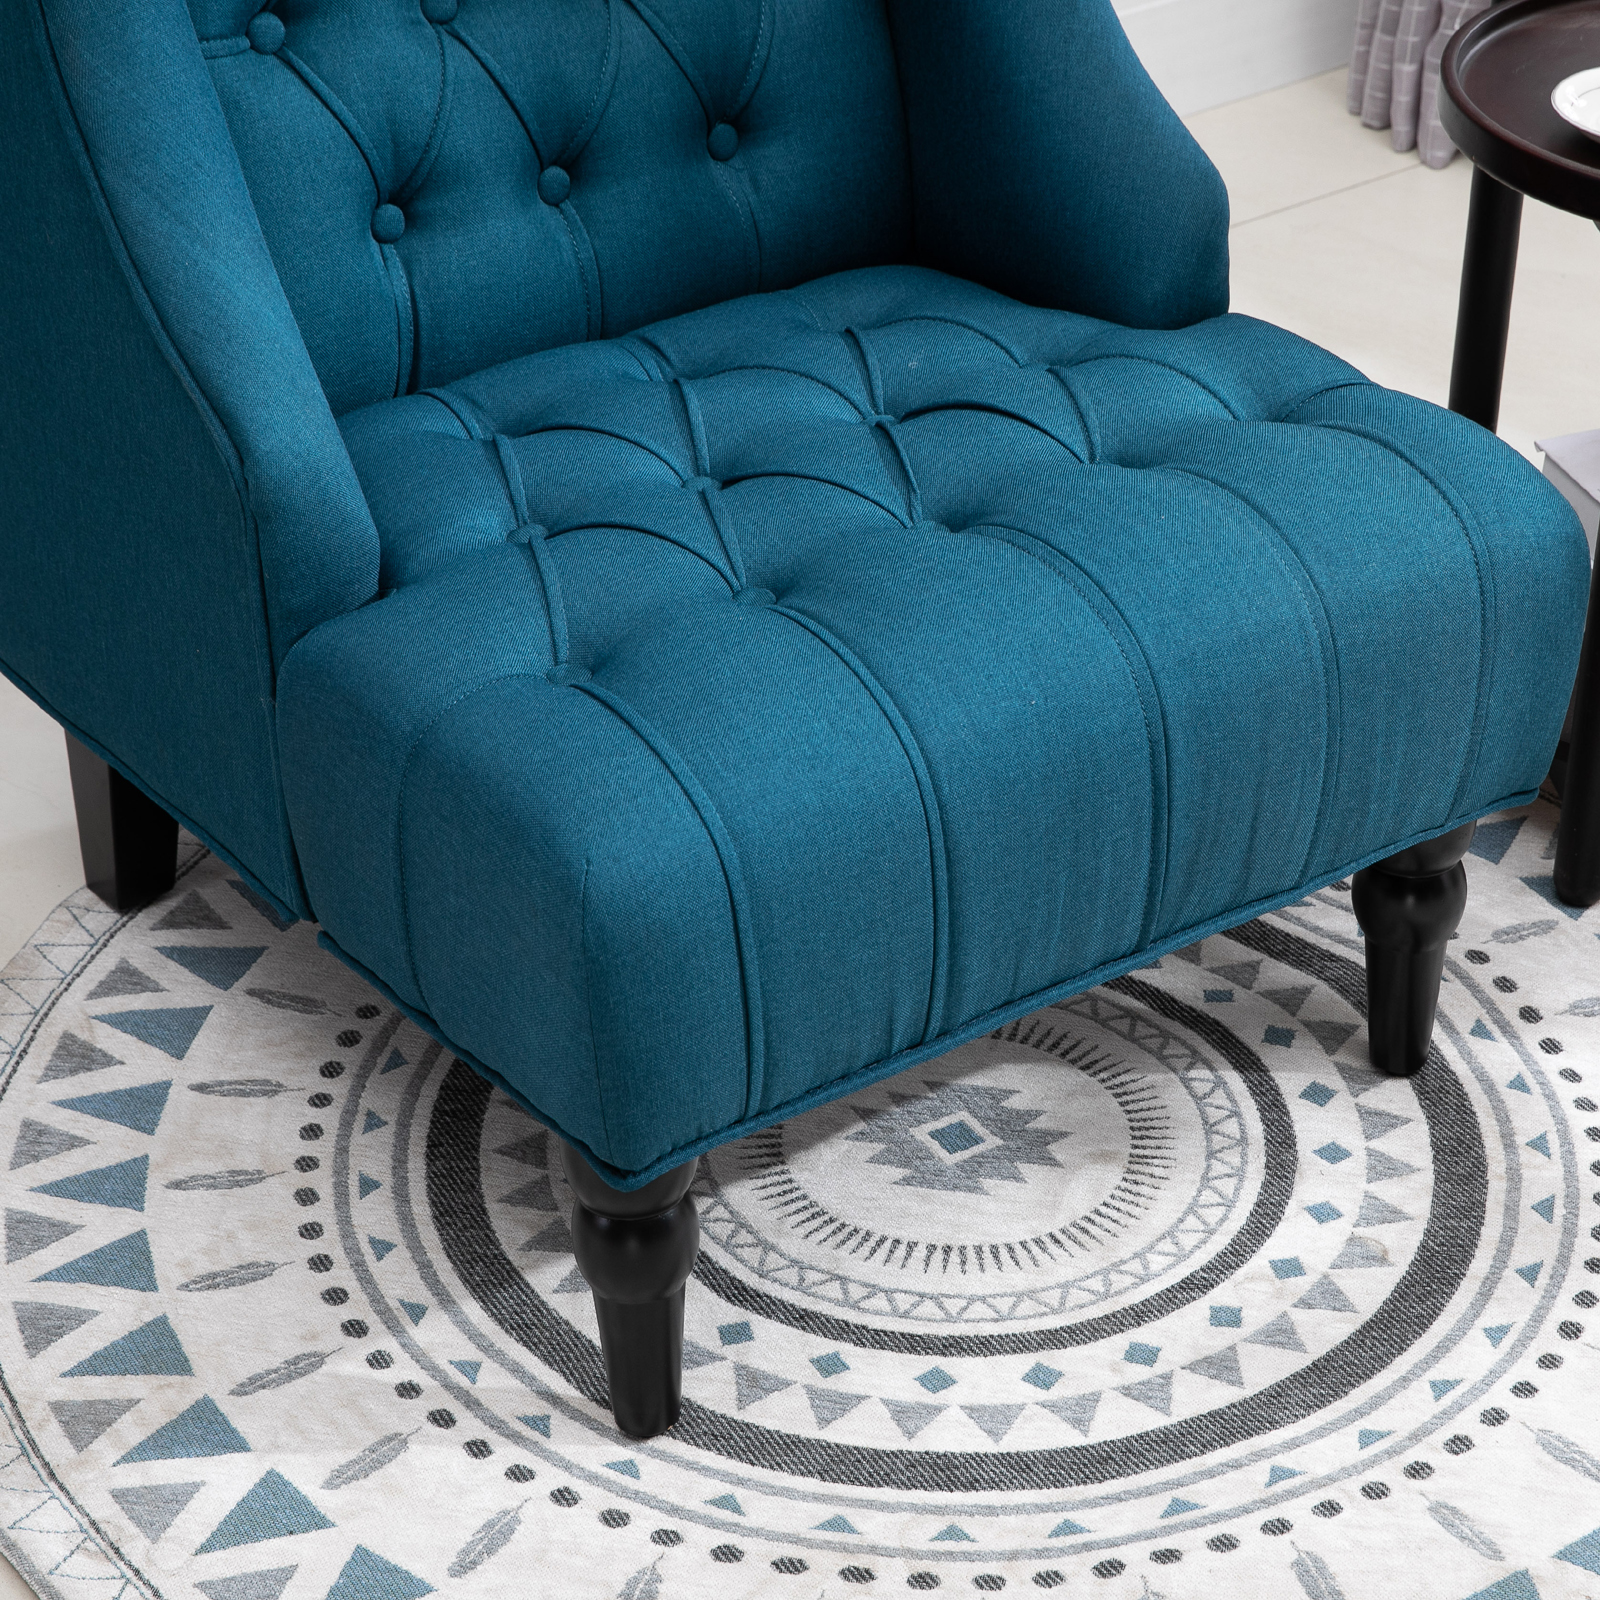 Linen Fabric Tufted Tall Wingback Accent Chair With Wooden